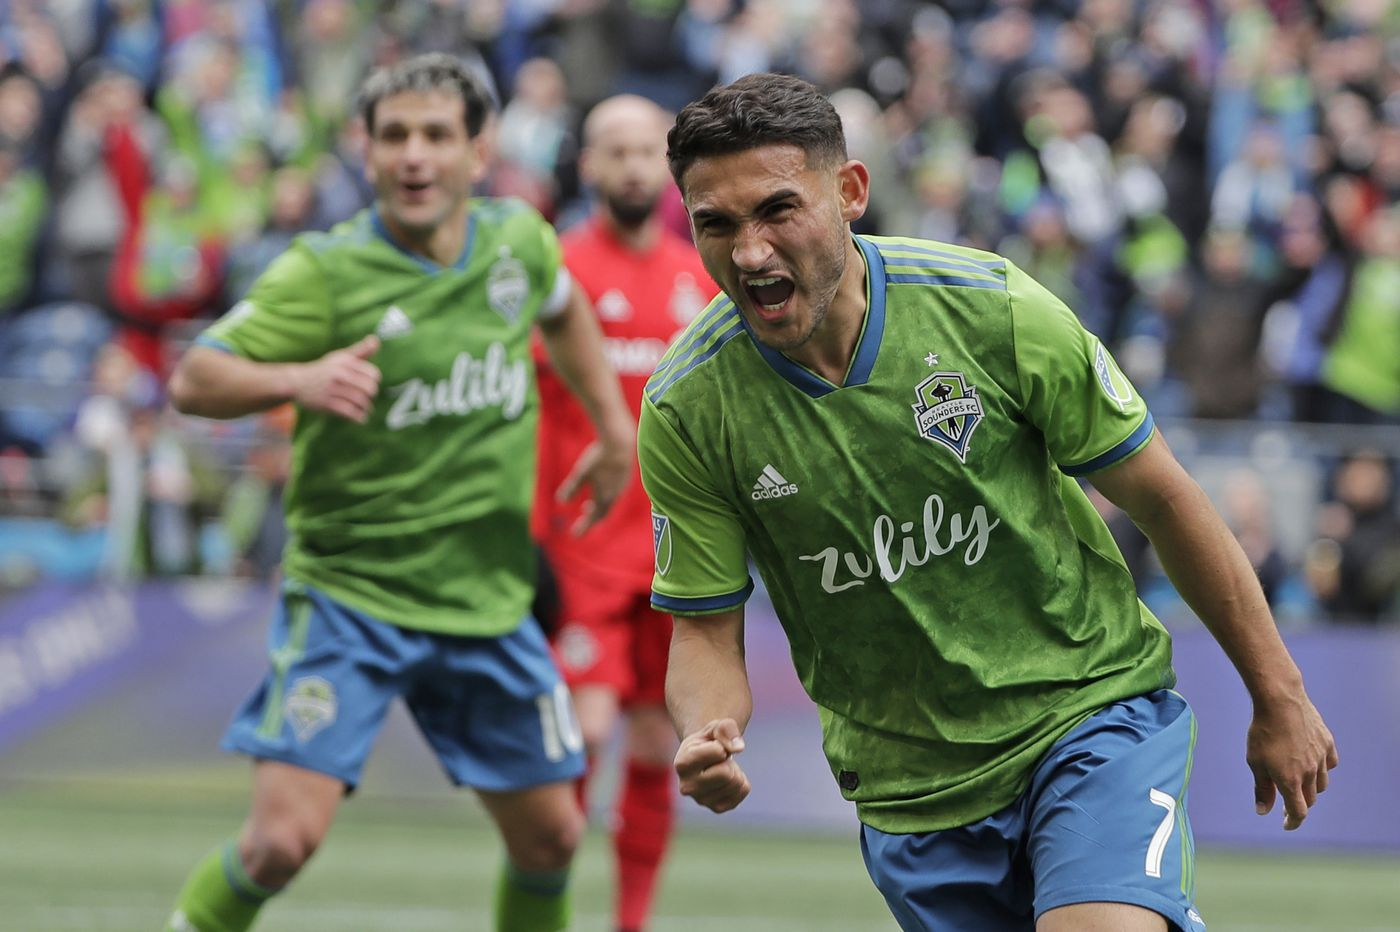 Seattle Sounders' Cristian Roldan will get to know Philadelphia well: first against the Union, then likely with the USMNT